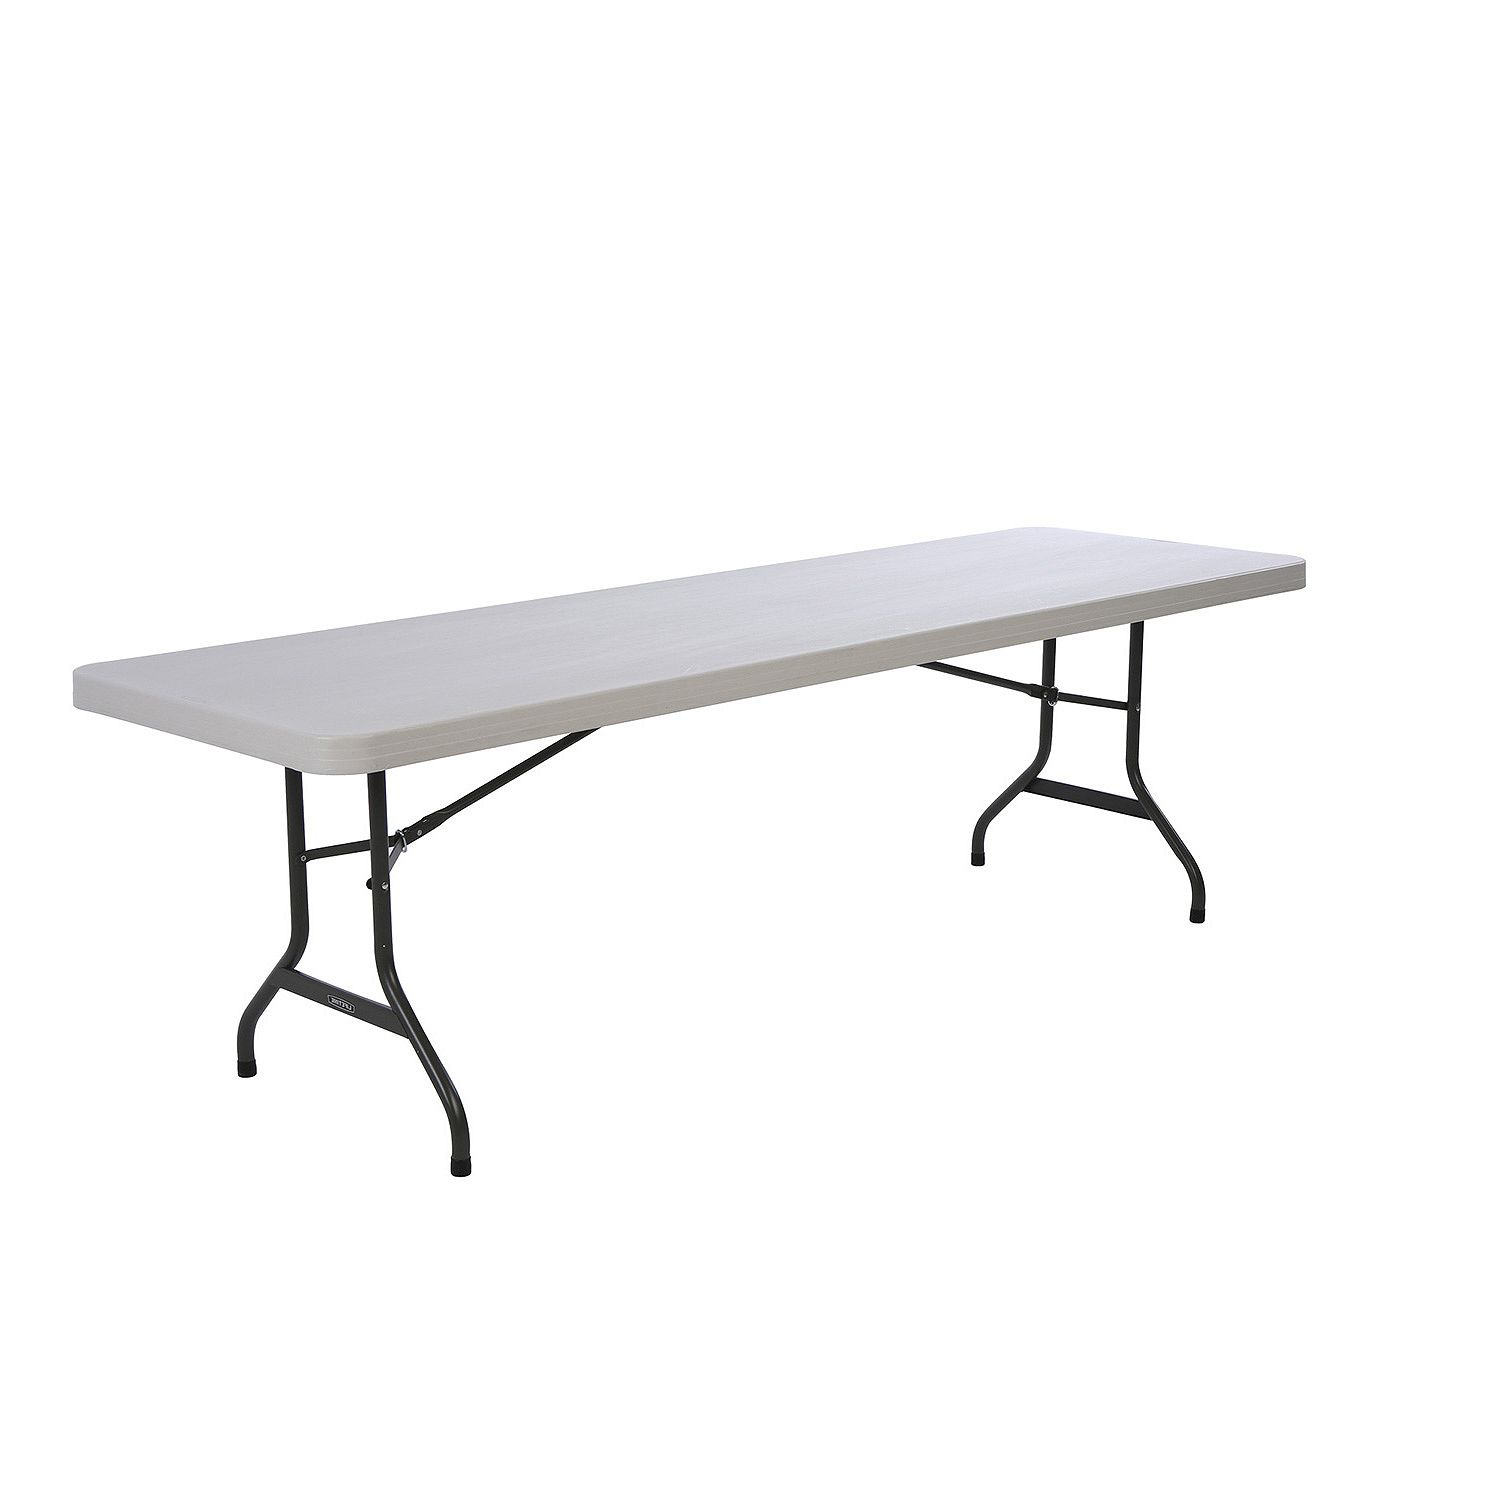 8' Banquet Table(add-on item)